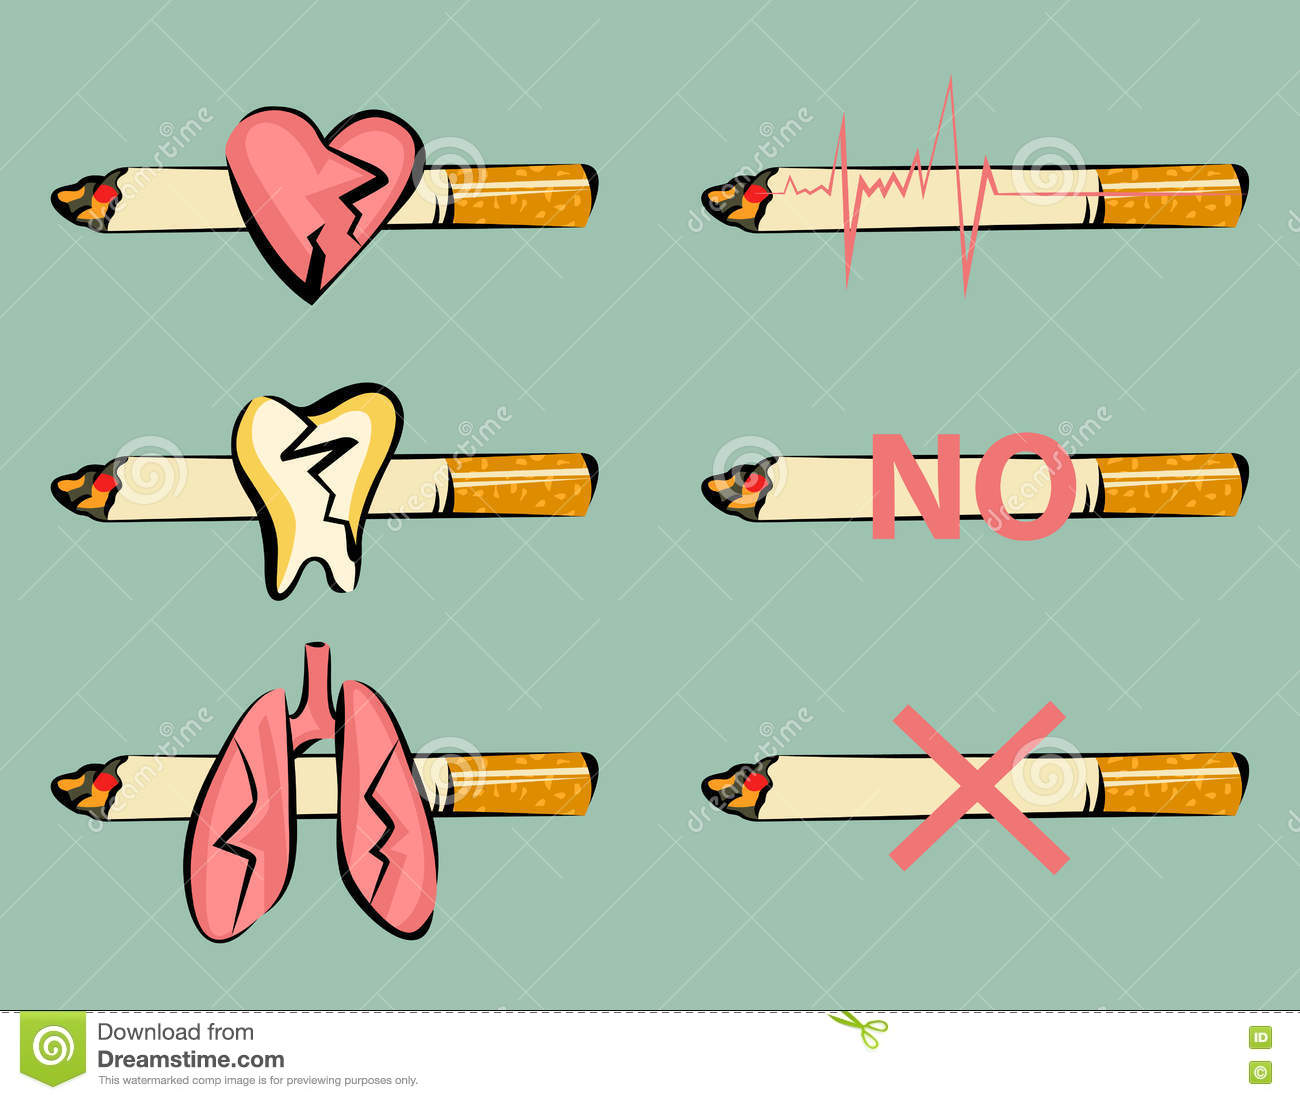 how to clear our lungs after stop smoking